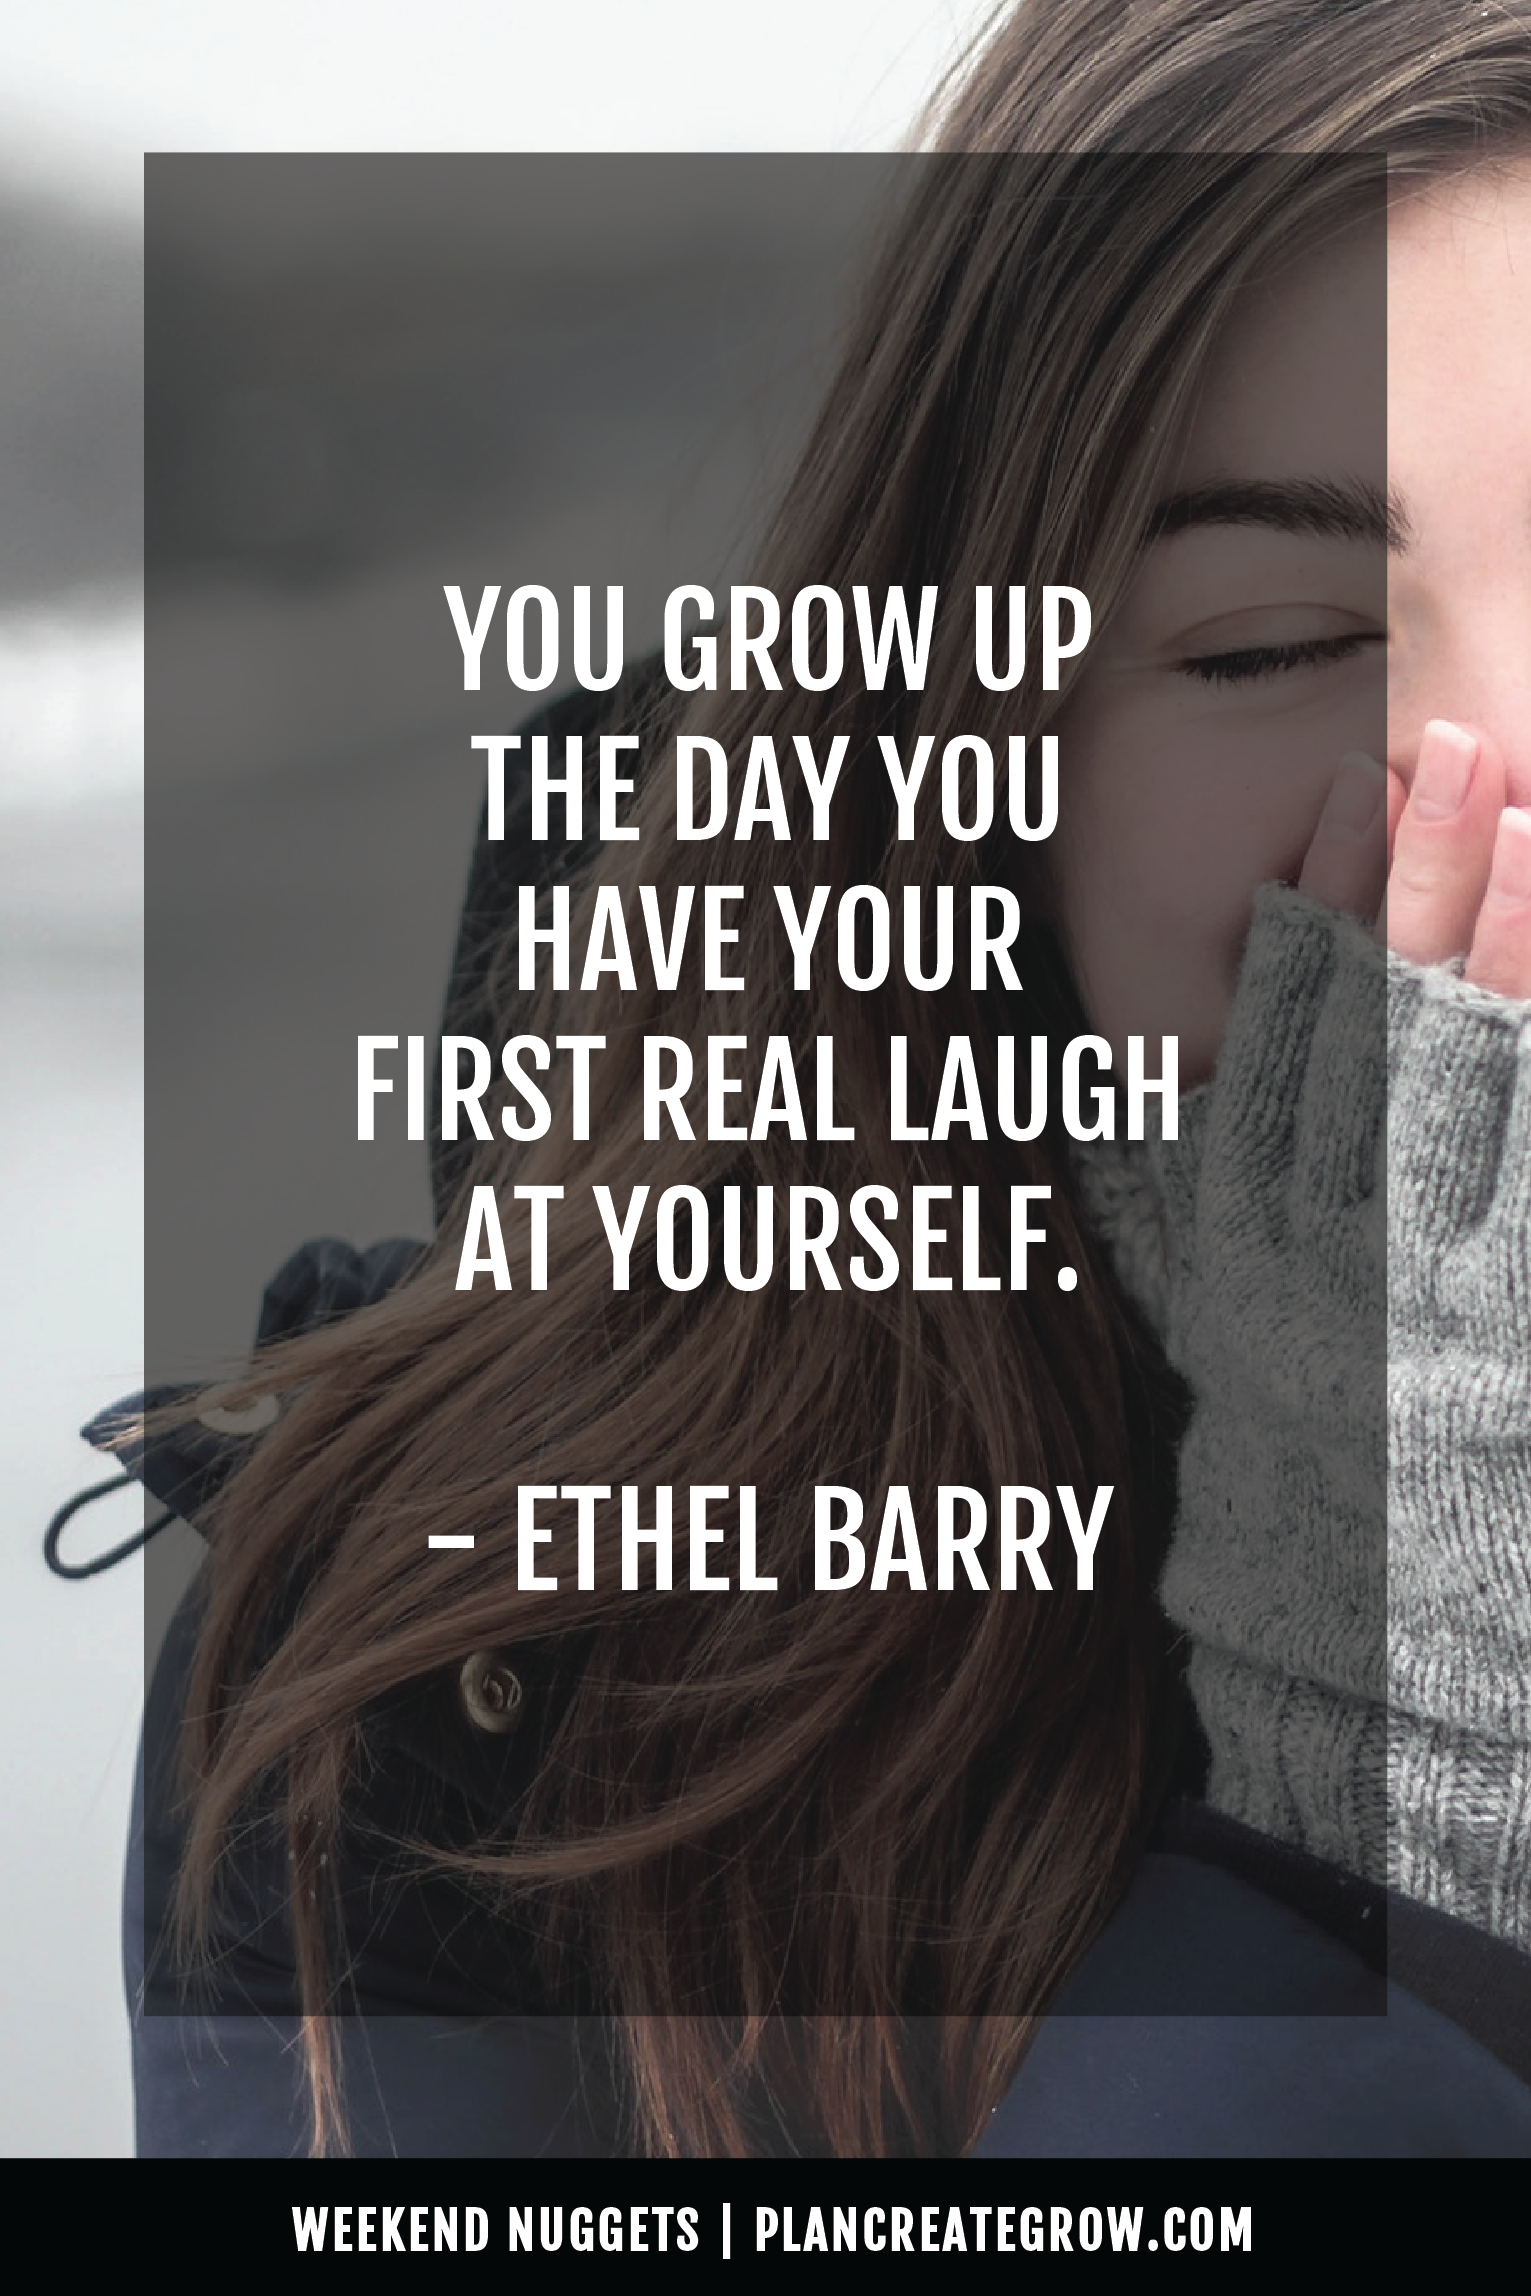 """""""You grow up the day you have your first real laugh at yourself."""" - Ethel Barry  This image forms part of a series called Weekend Nuggets - a collection of quotes and ideas curated to delight and inspire - shared each weekend. For more, visit plancreategrow.com/weekend-nuggets."""